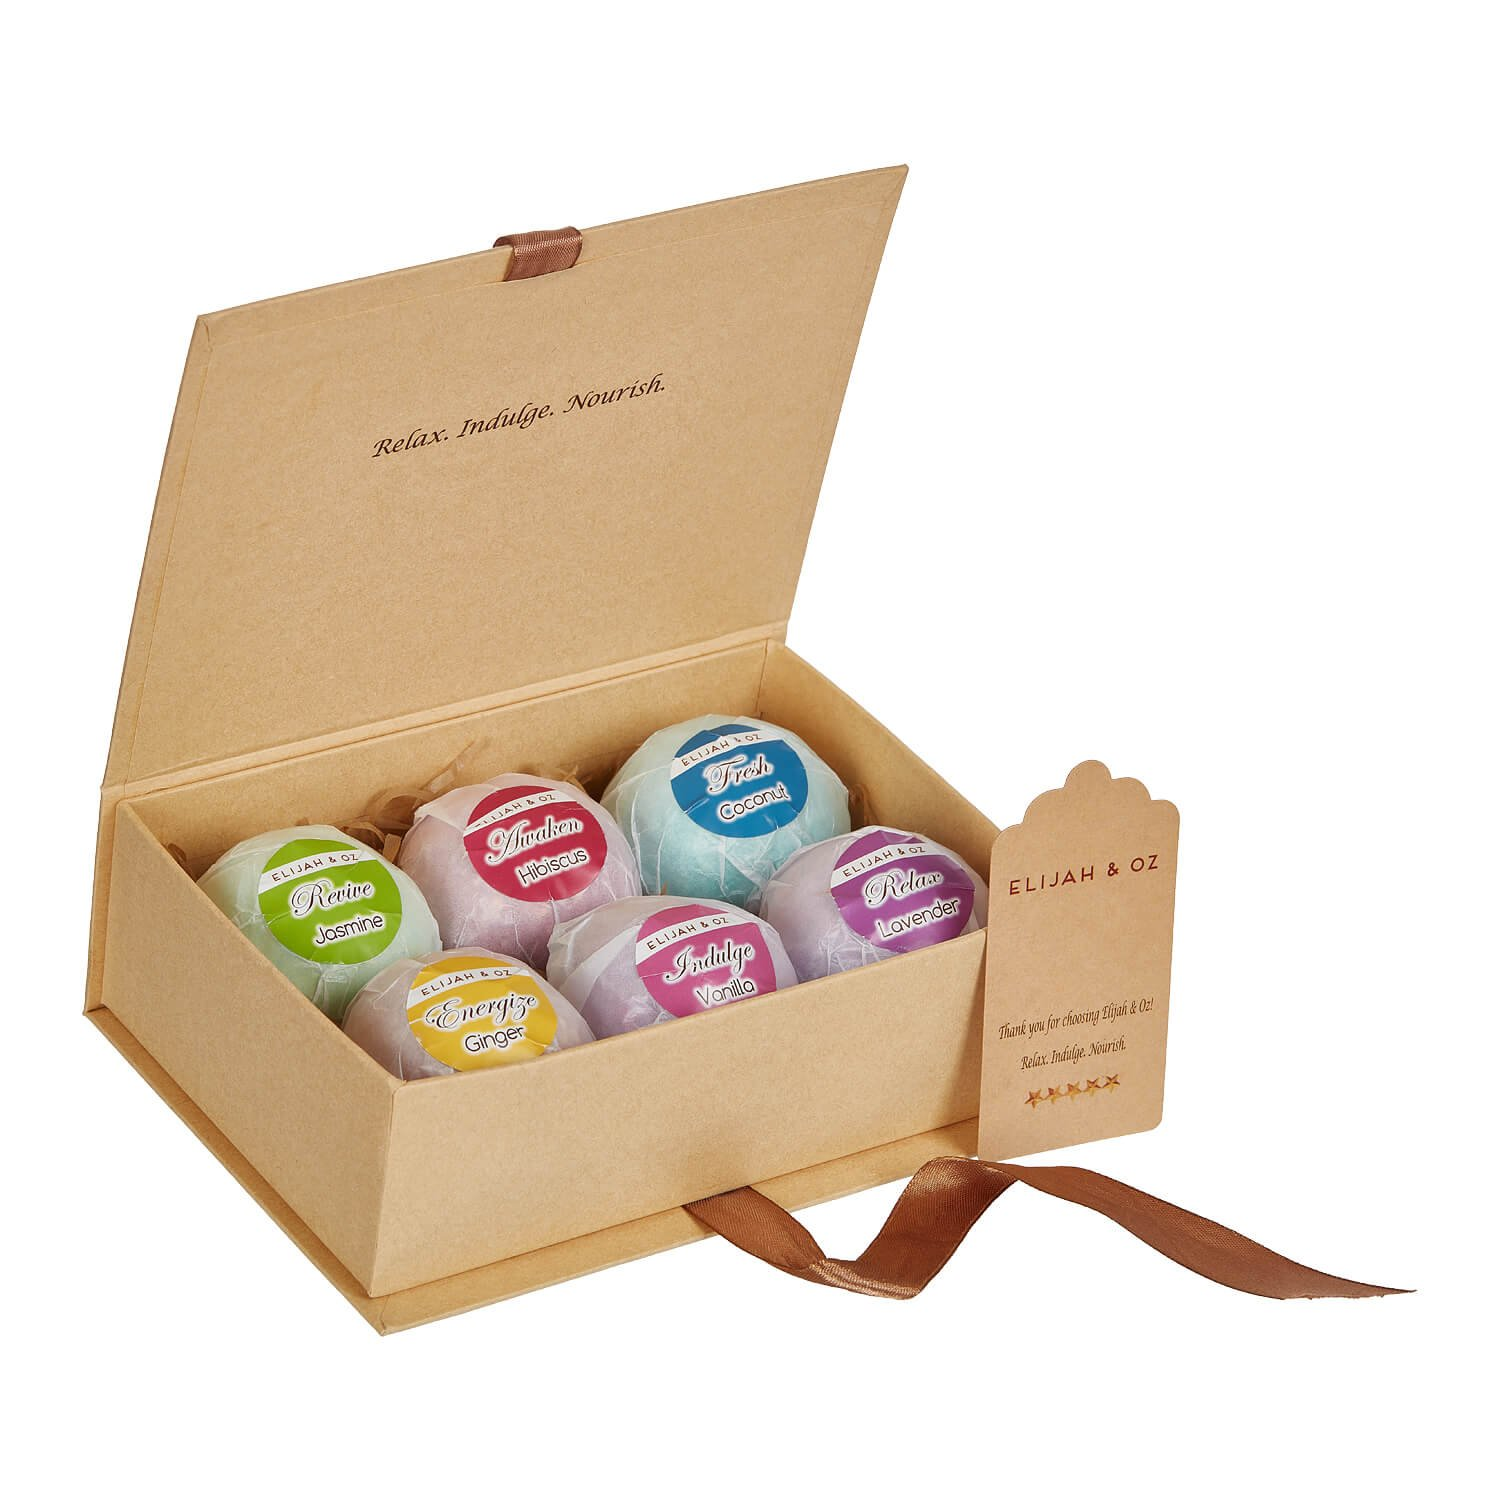 Bath Bombs Gift Set - Handmade Spa Fizzies for Relaxation & Aromatherapy - With Organic, Natural Essential Oils and Shea Butter - Vegan & Cruelty-Free (Set of 6)- By Elijah & Oz by Elijah & Oz (Image #2)